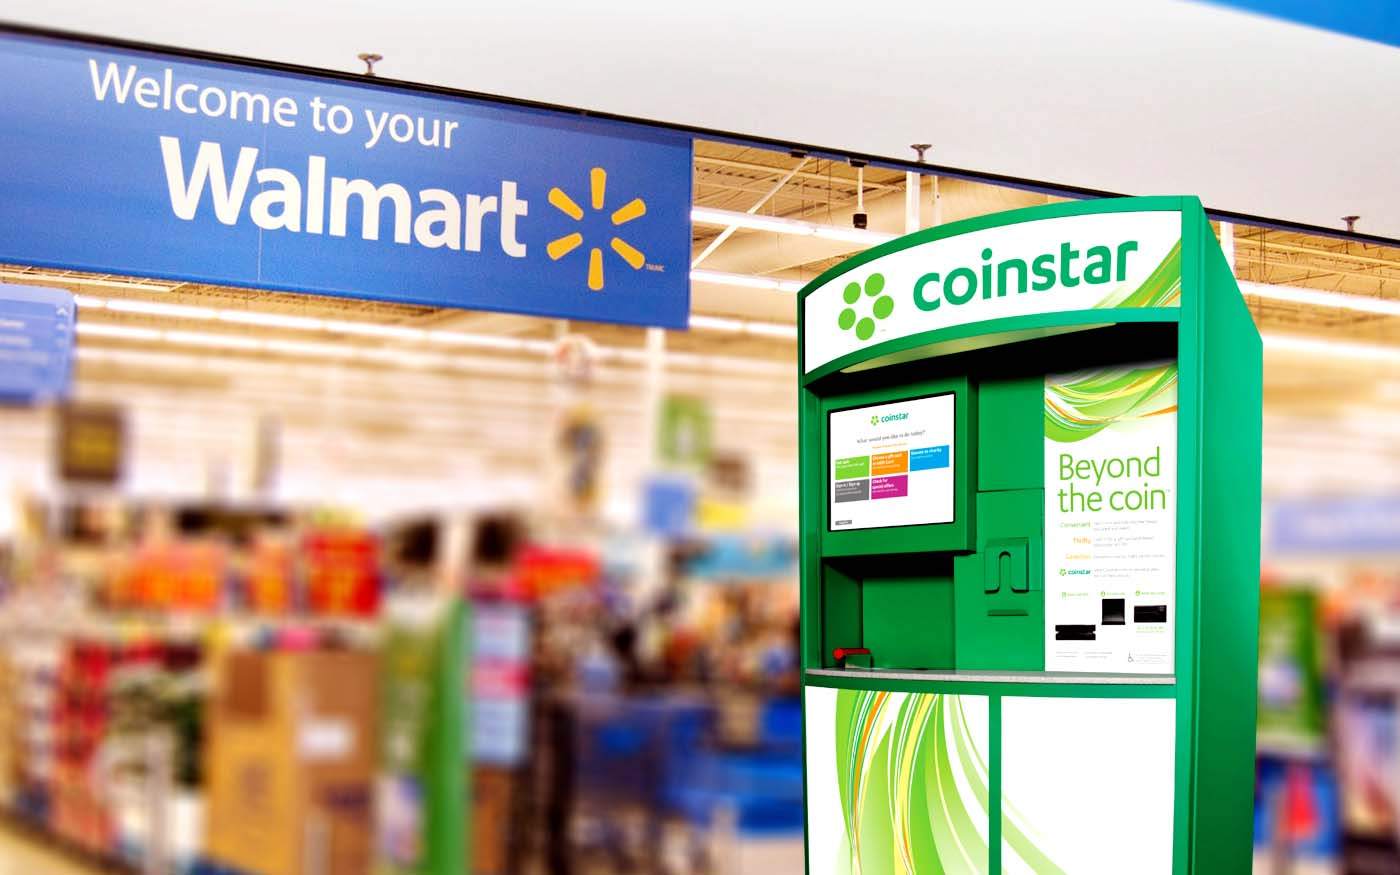 Does Walmart Have A Coinstar